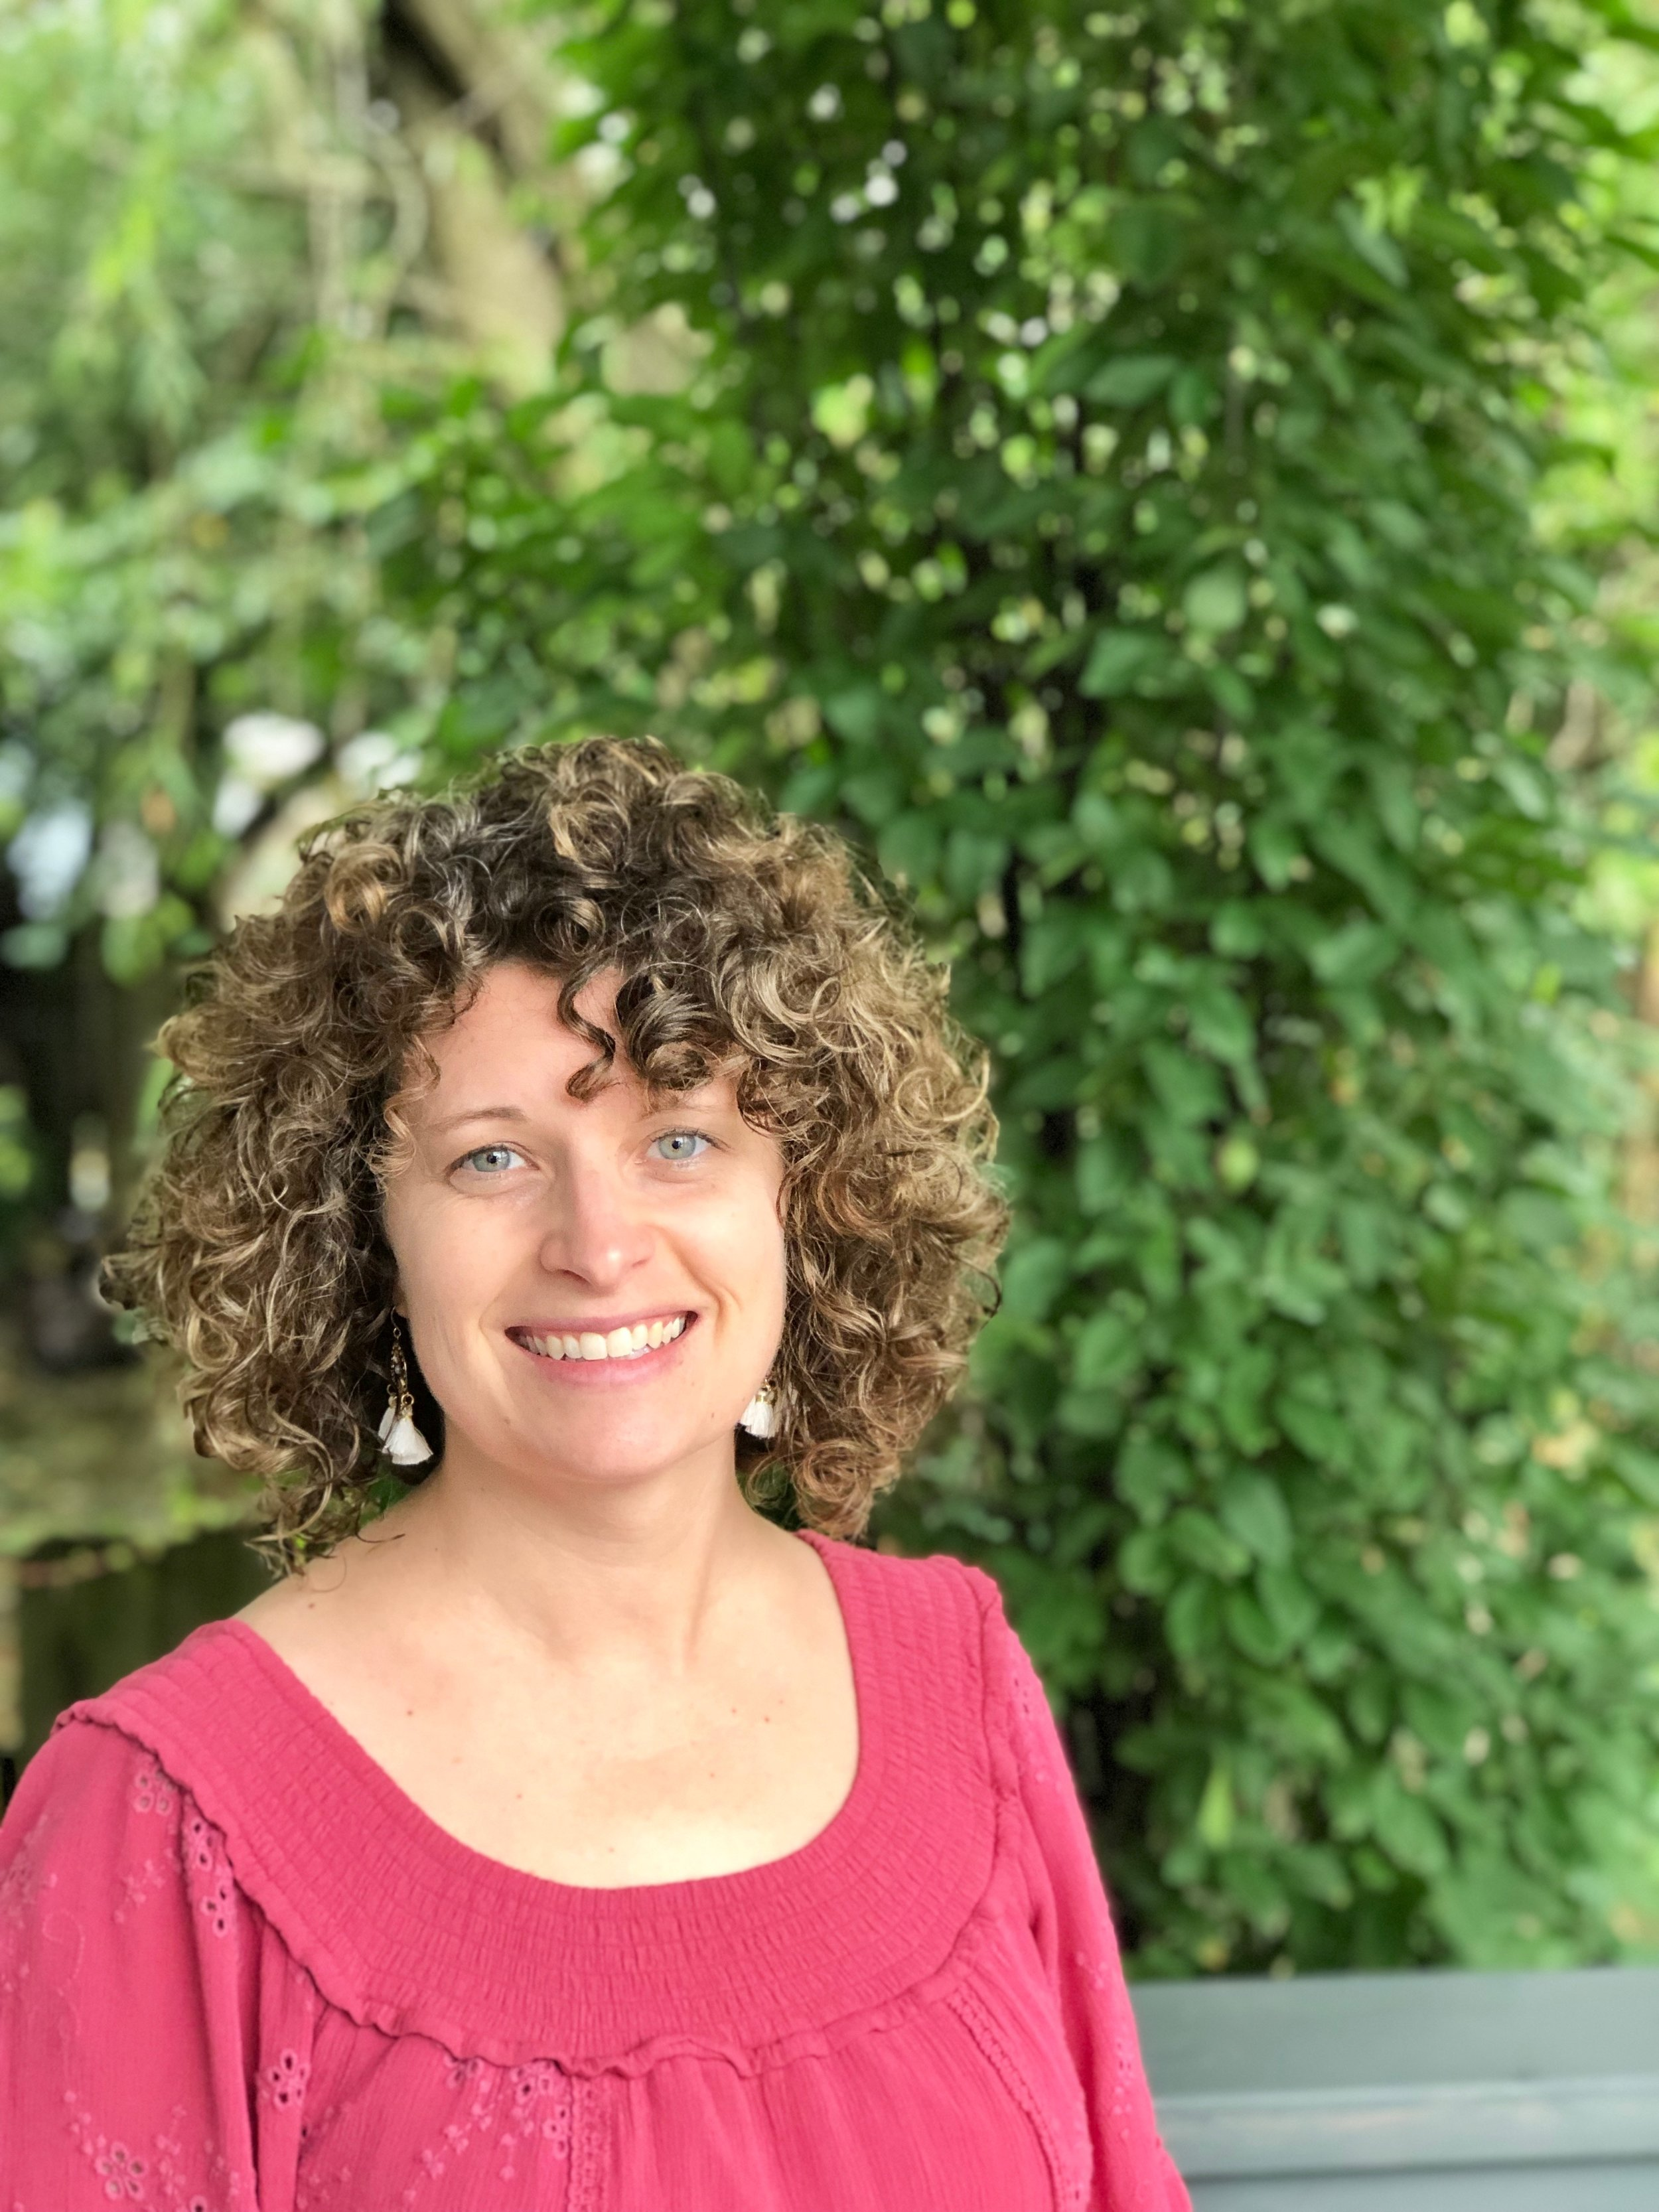 Lori Brown, RDN, LDN - Lori is a Registered Dietitian Nutritionist (RDN), Nutrition Therapist, and Certified Intuitive Eating Counselor. Her passion is helping people discover body and food peace, and she considers herself a radical anti-diet dietitian.